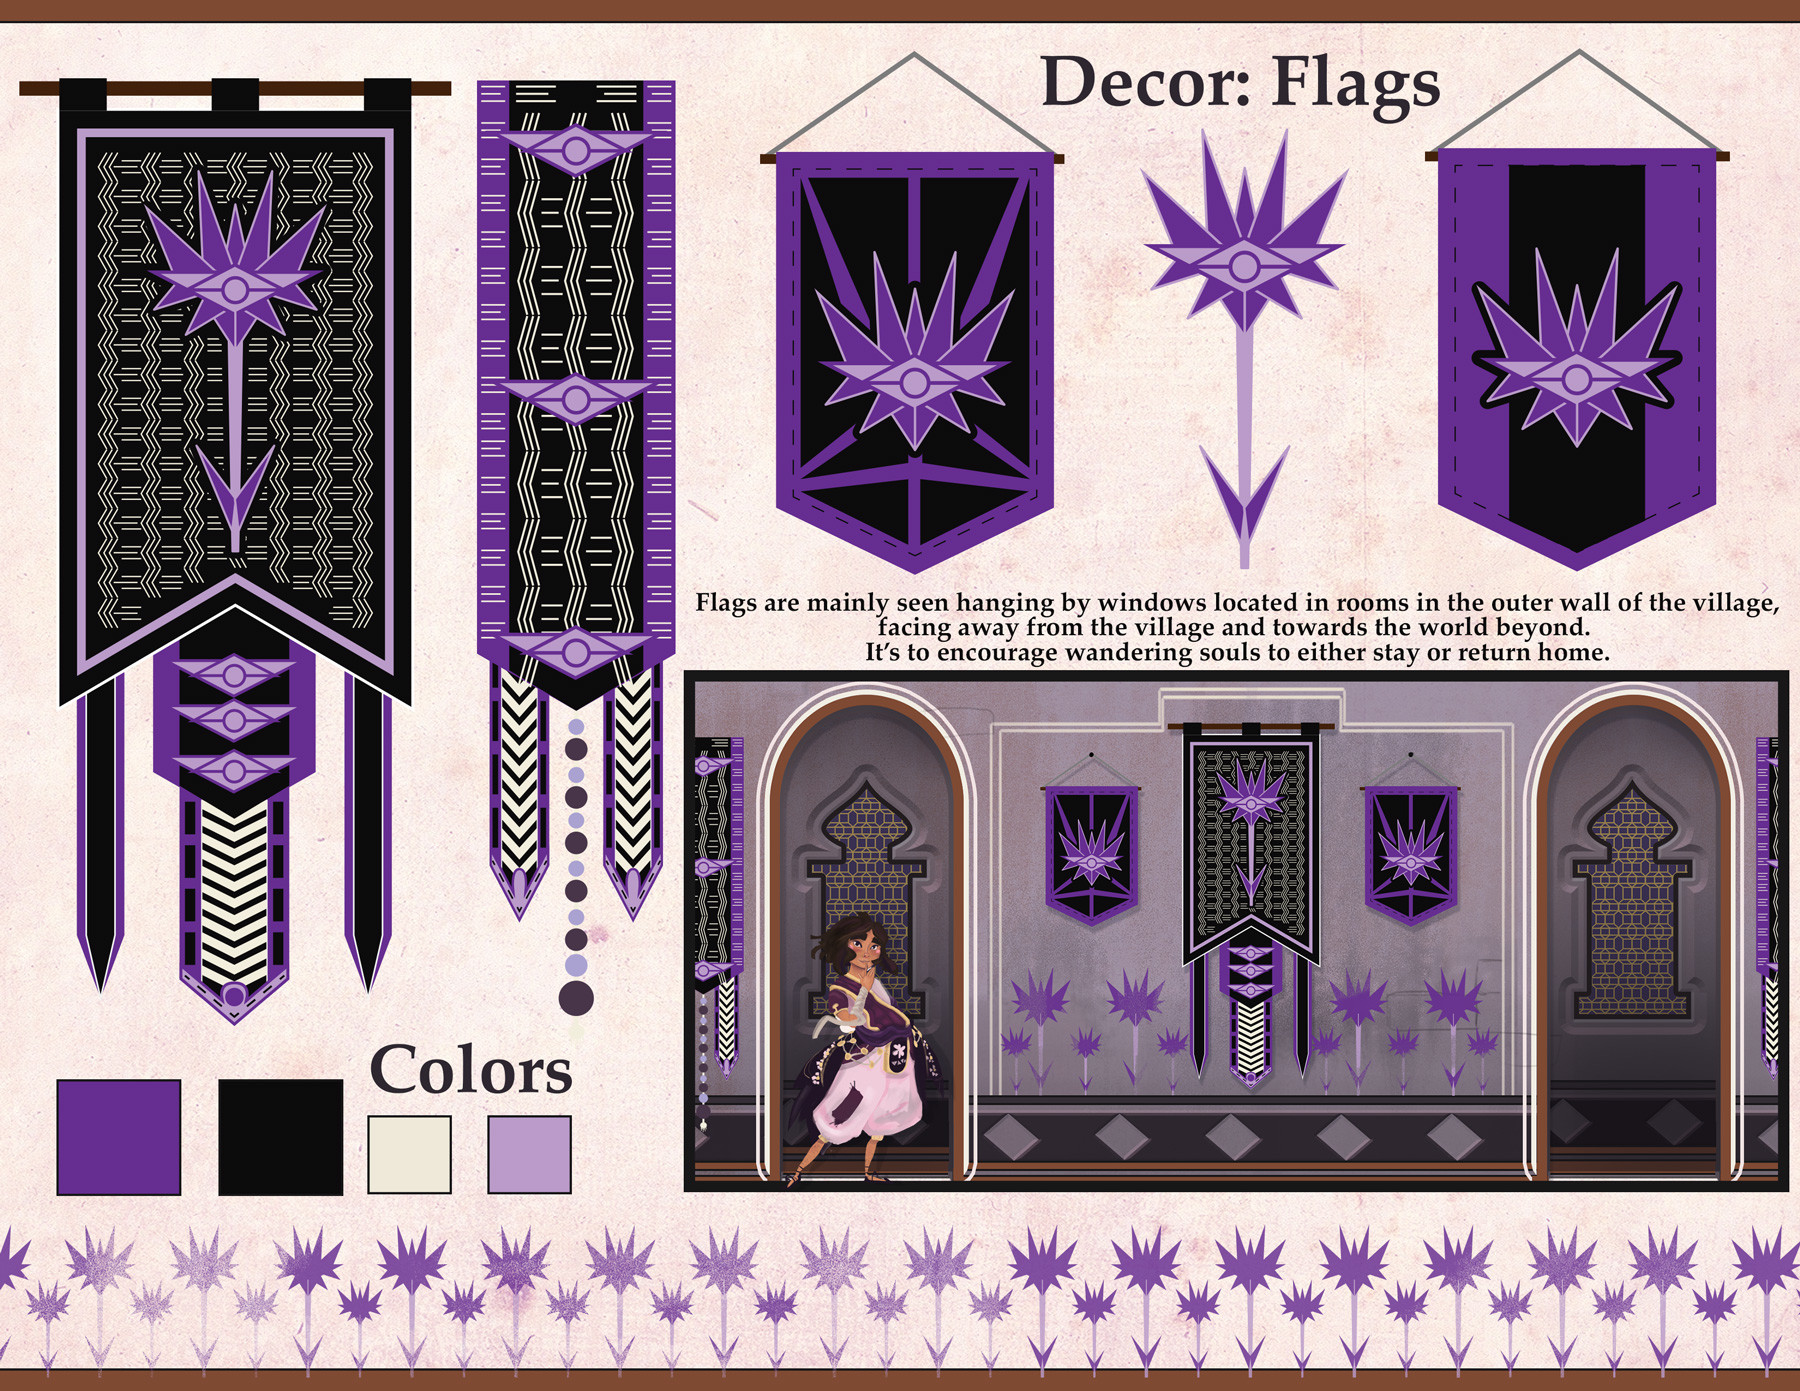 Flags are mainly seen hanging by windows located in rooms in the outer wall of the village,